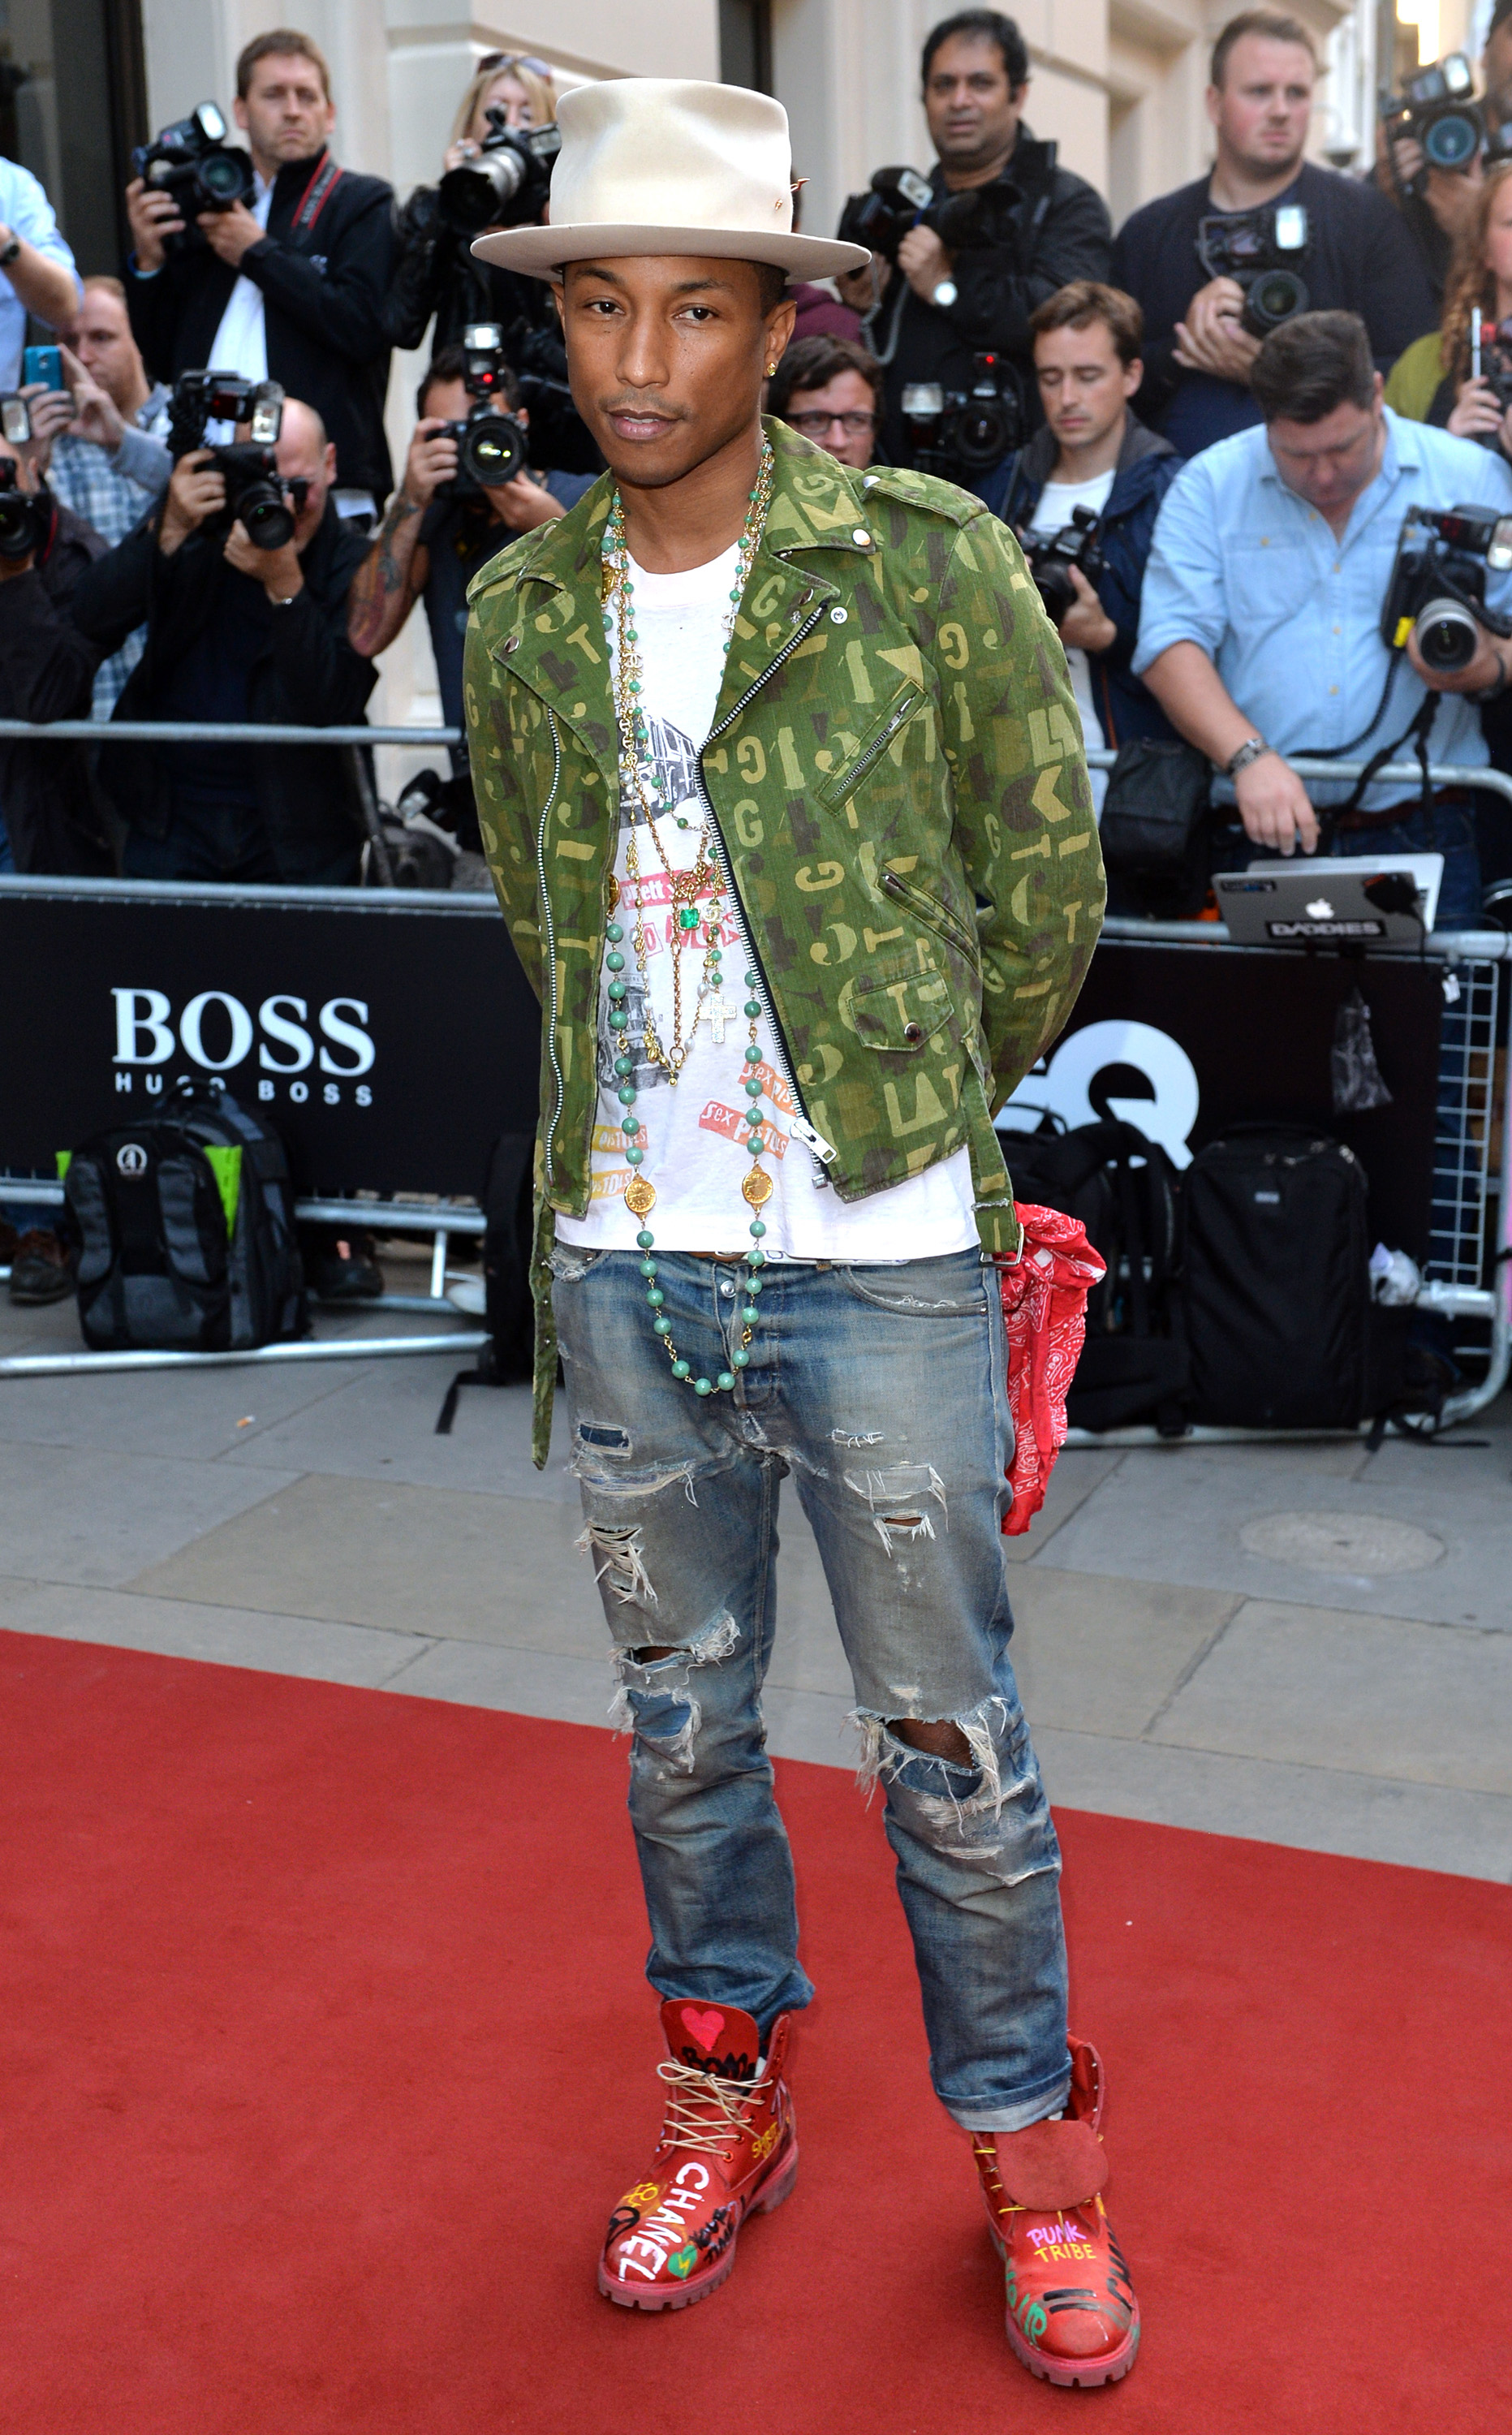 karl lagerfeld directed pharrell williams in a fashion